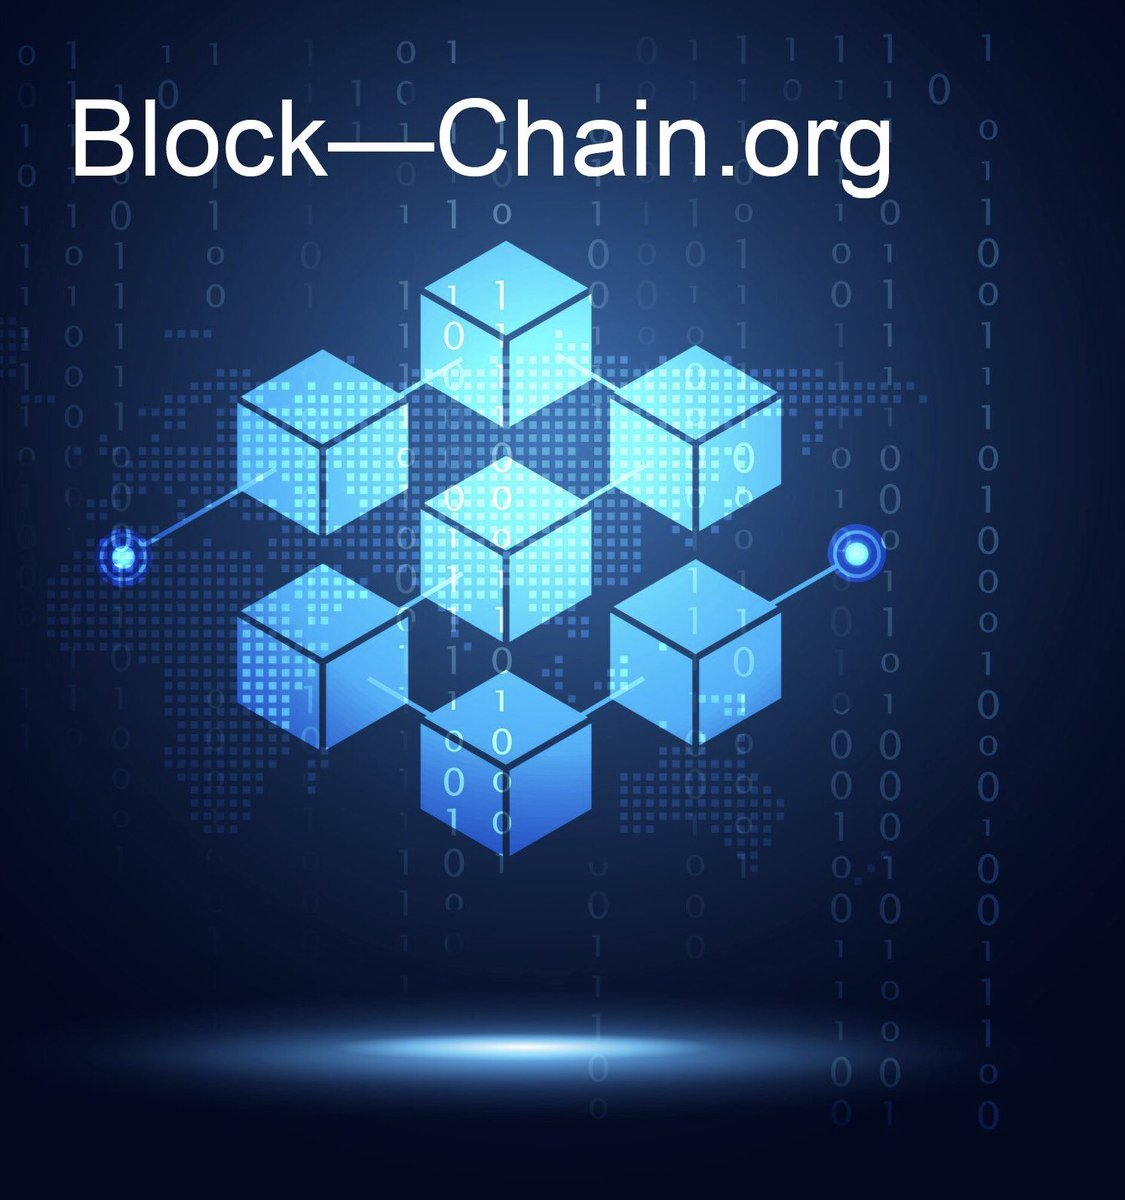 Block—http://Chain.org  top domain for sale!! #blockchain #defi #cryptopic.twitter.com/OesEFedZtC